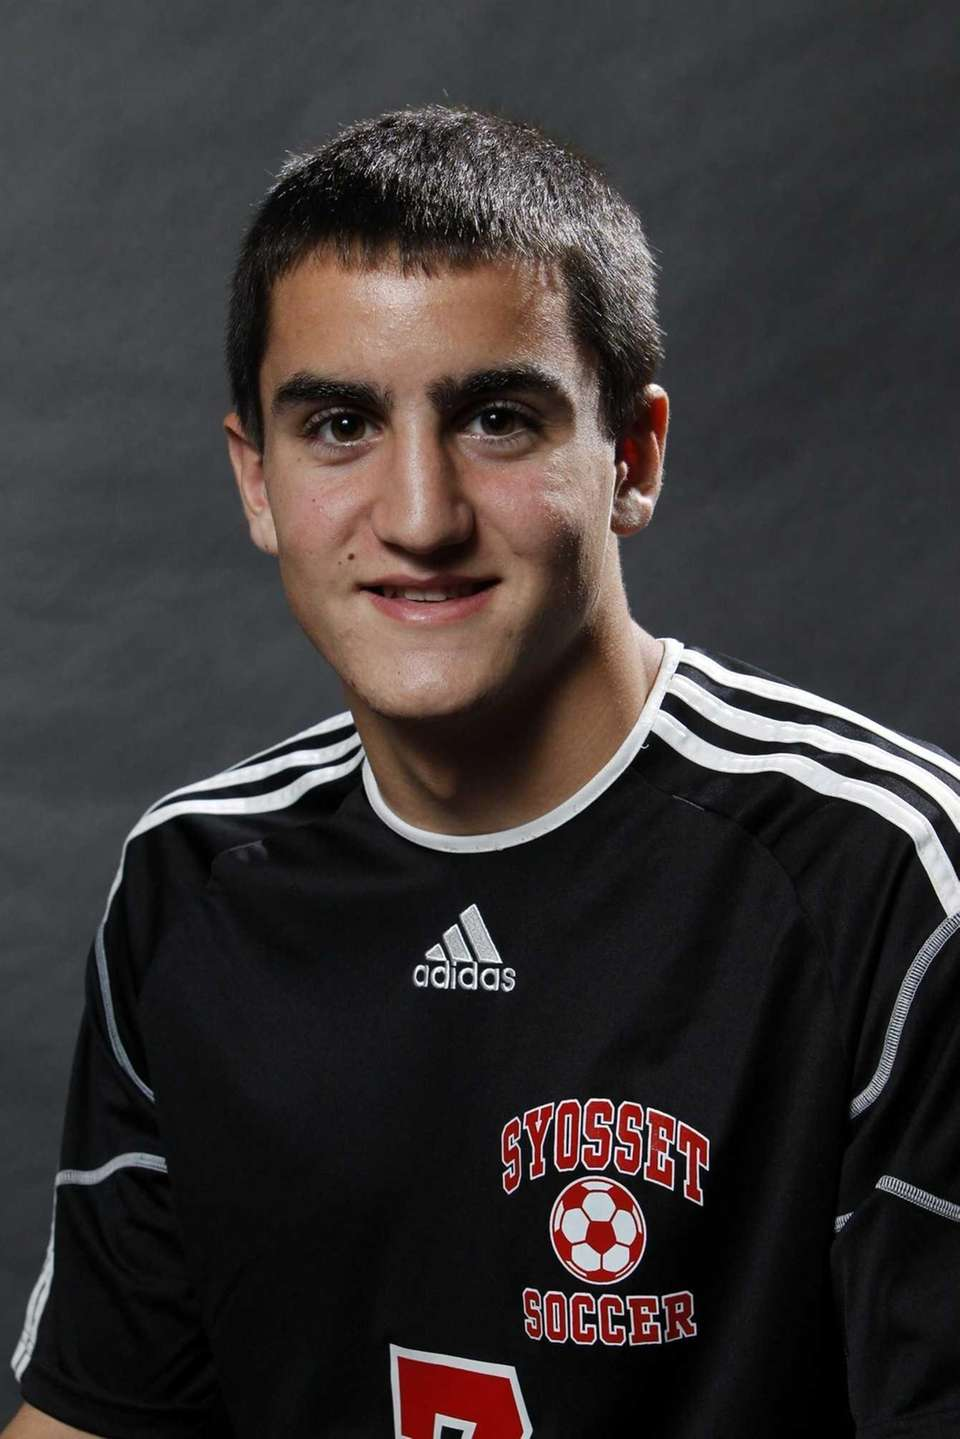 NASSAU PLAYER OF THE YEAR: SCOTT DEBENEDITTIS Syosset,